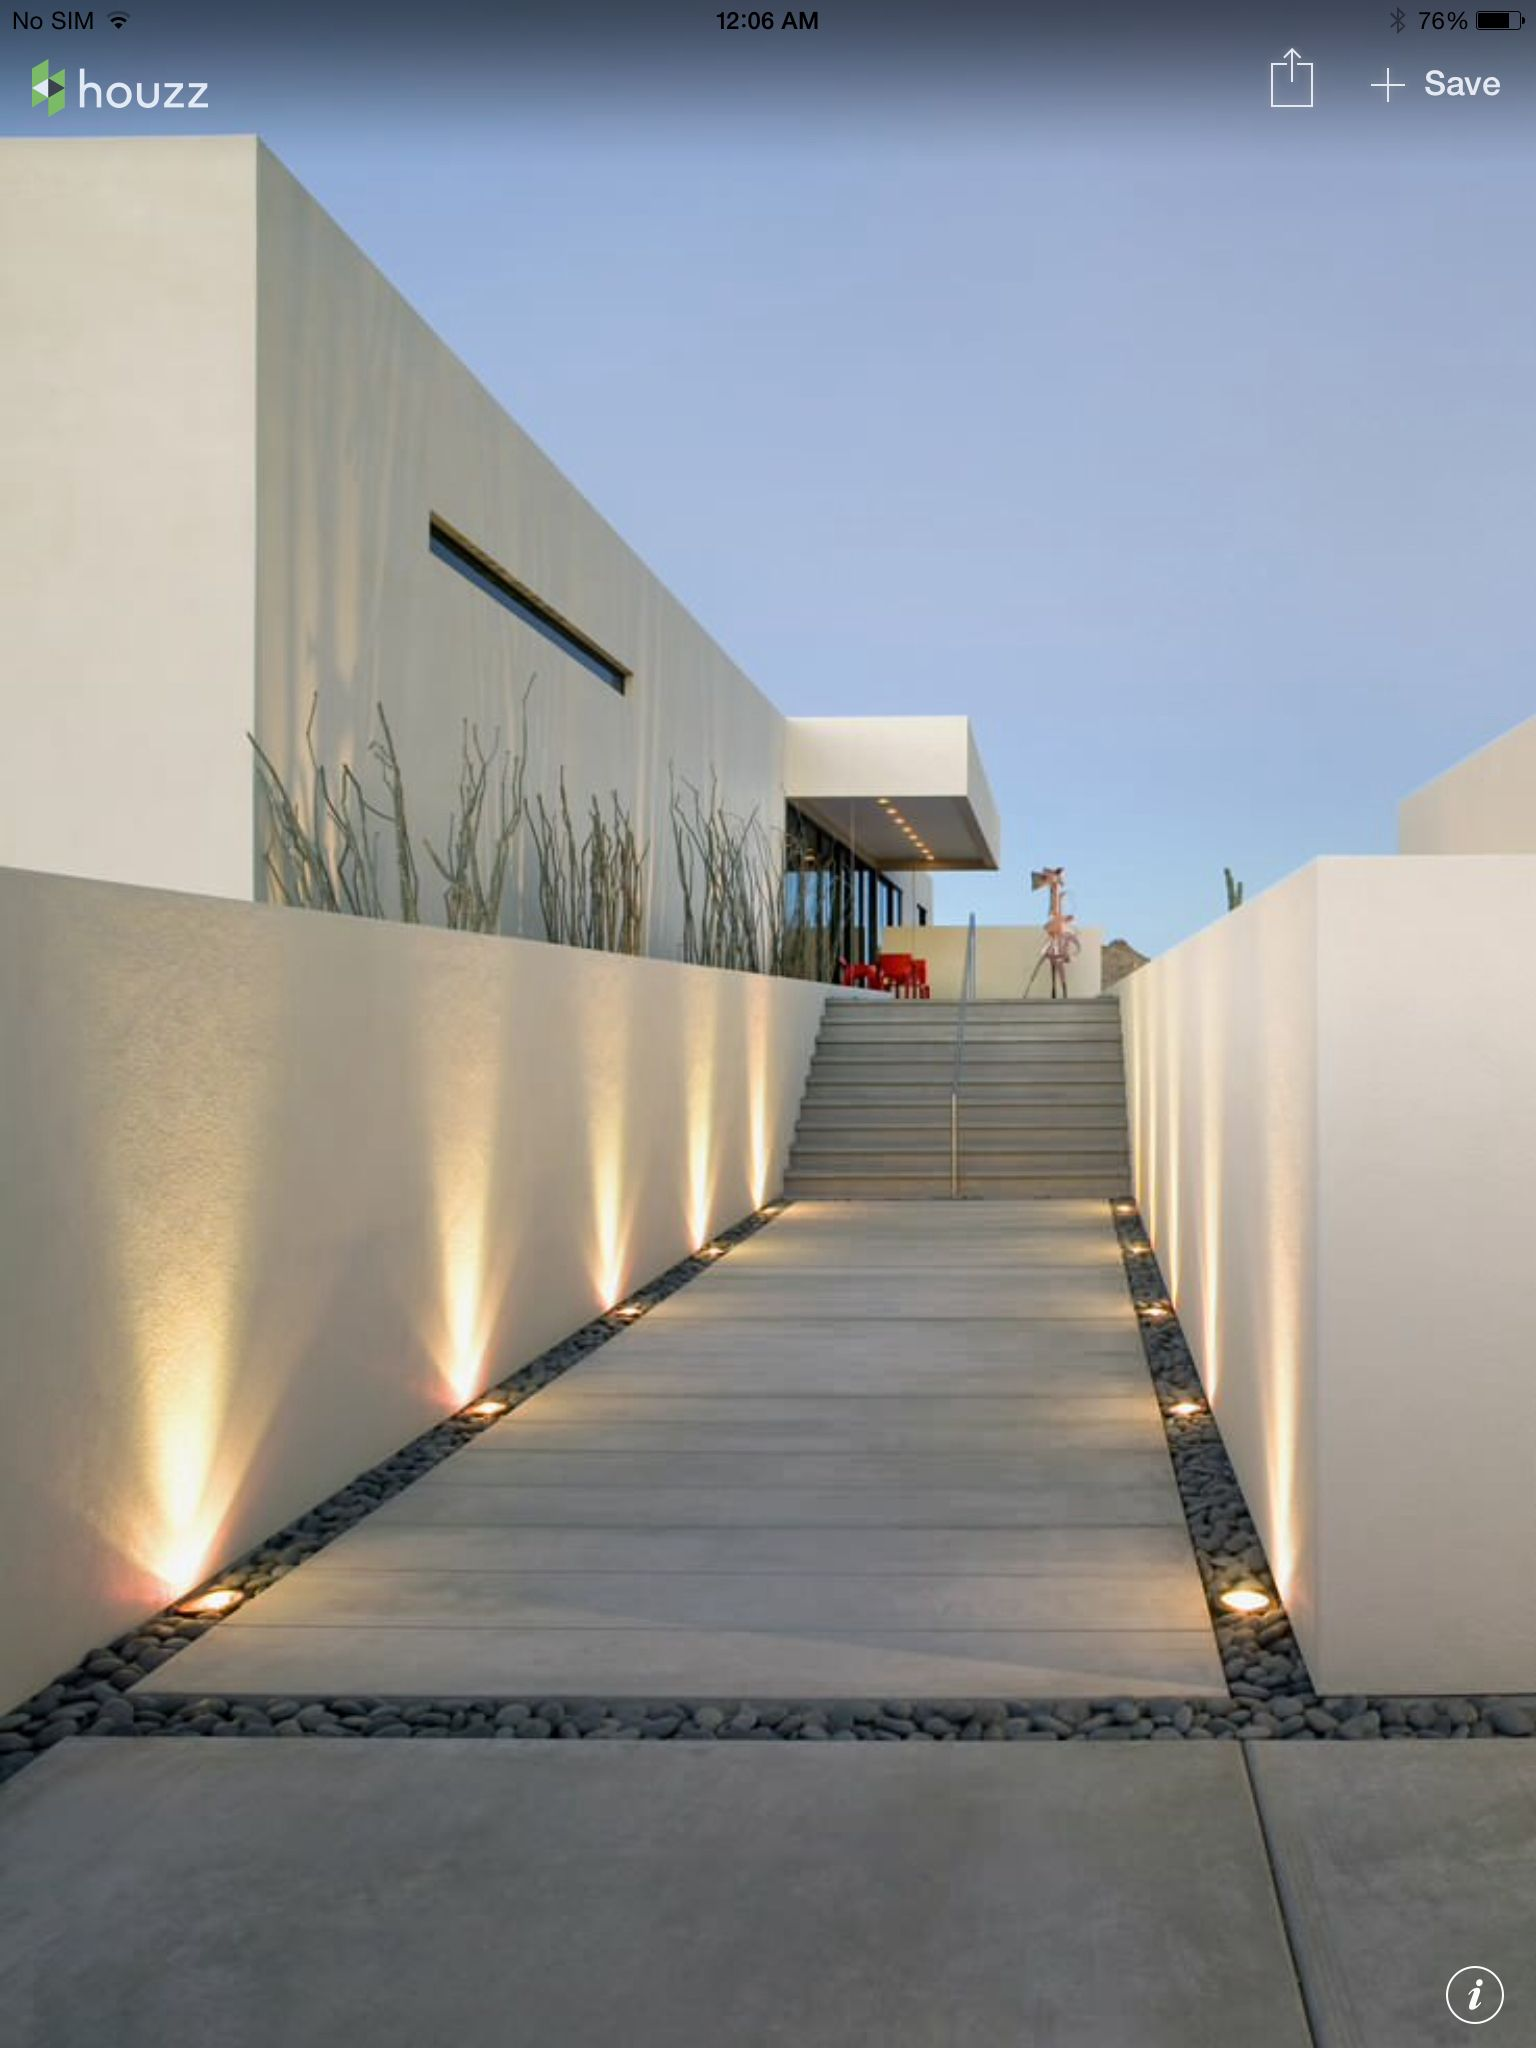 Outdoor modern path | Architecture shape | Pinterest | Einfahrt ...